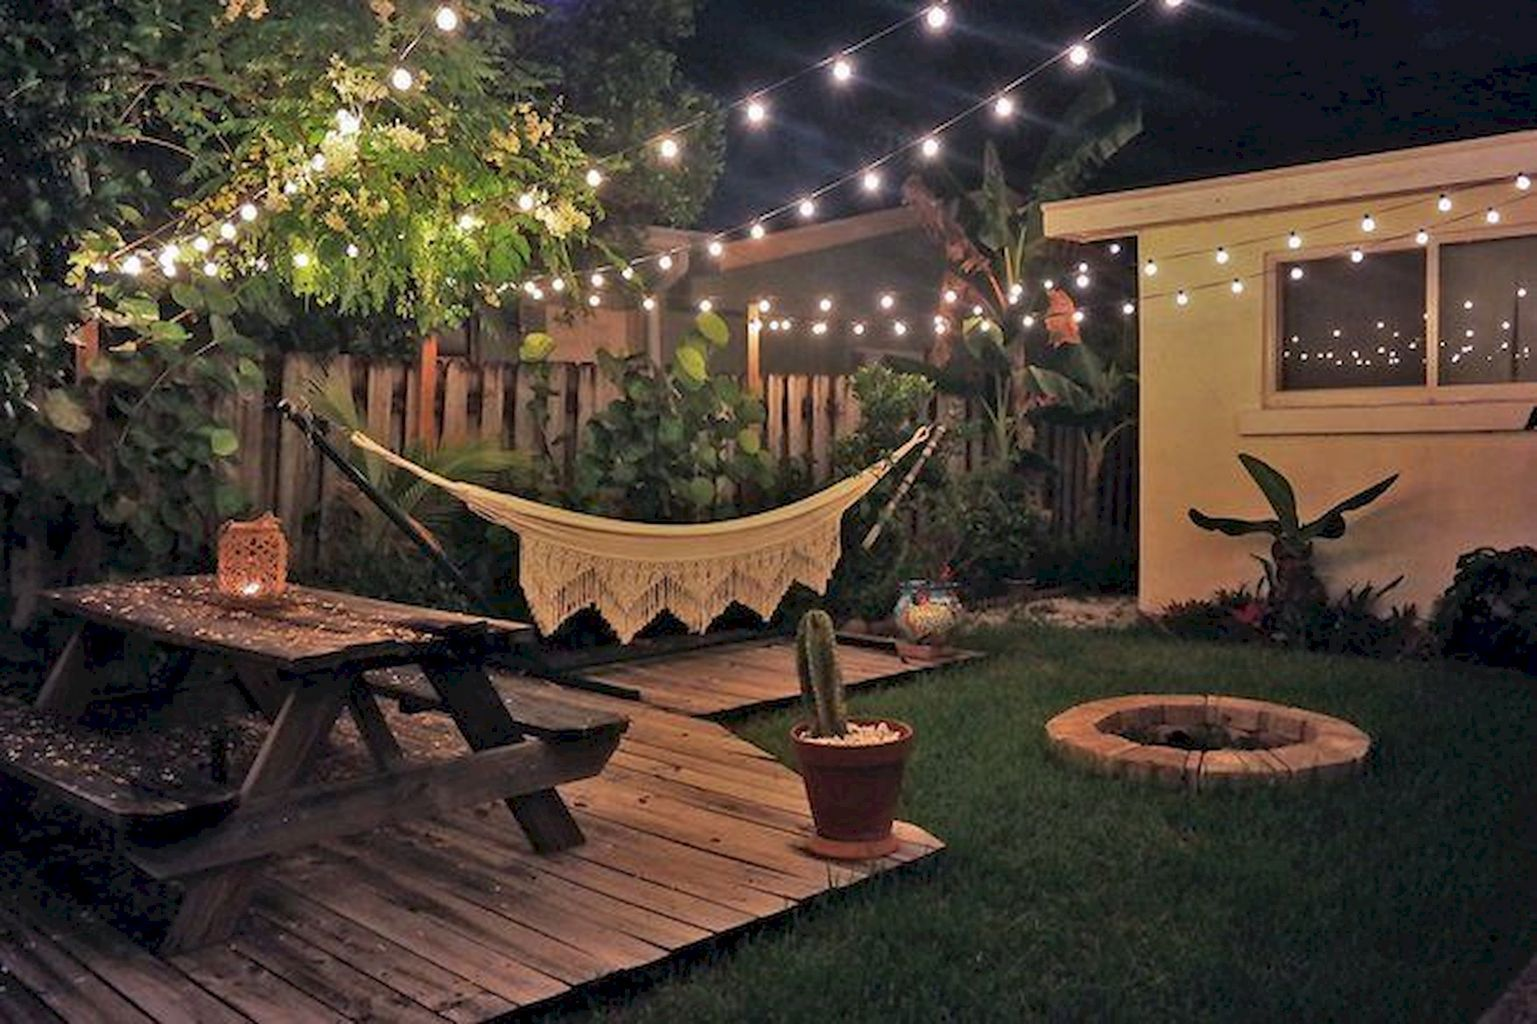 10 Beautiful And Unique Outdoor Designs For An Amazing ...